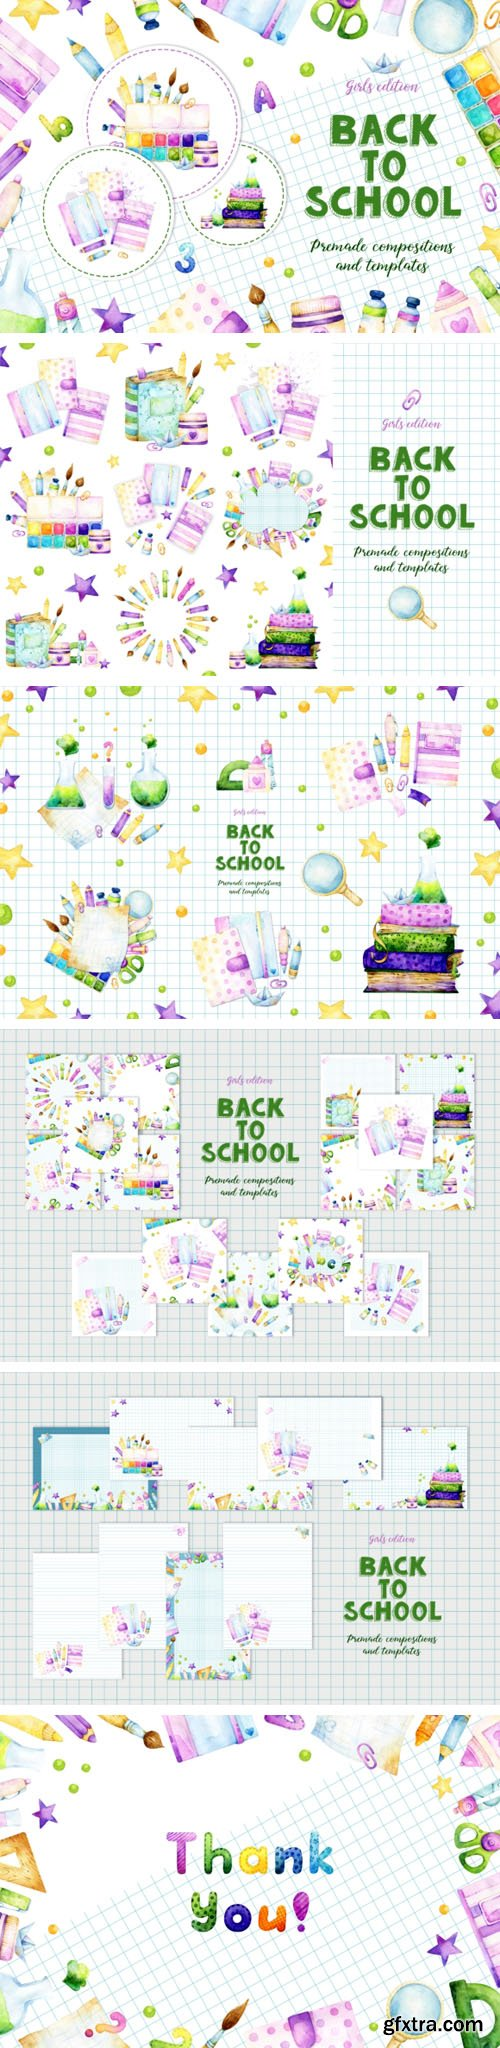 Back to School - Premade Compositions & Templates